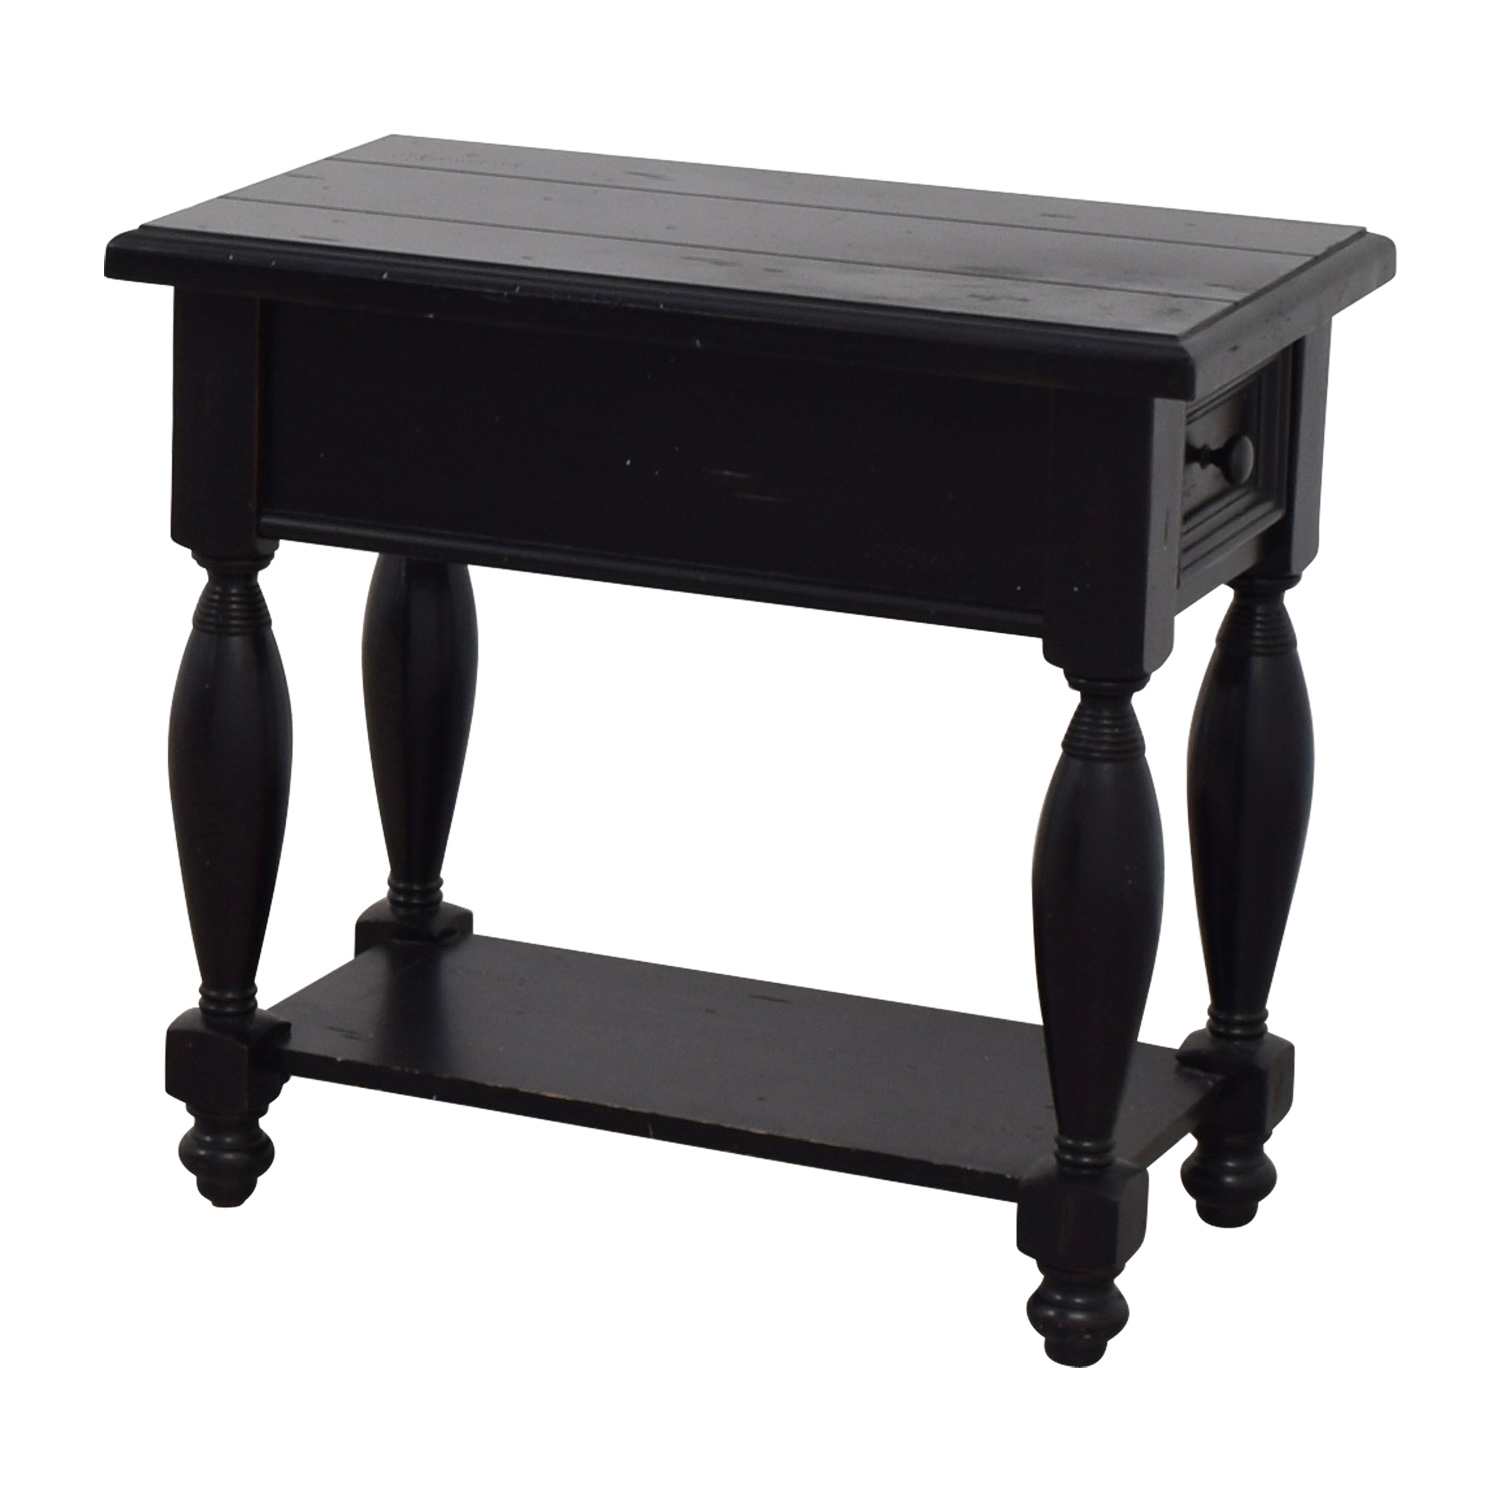 shop Raymour & Flanigan Raymour & Flanigan Black Side Table online